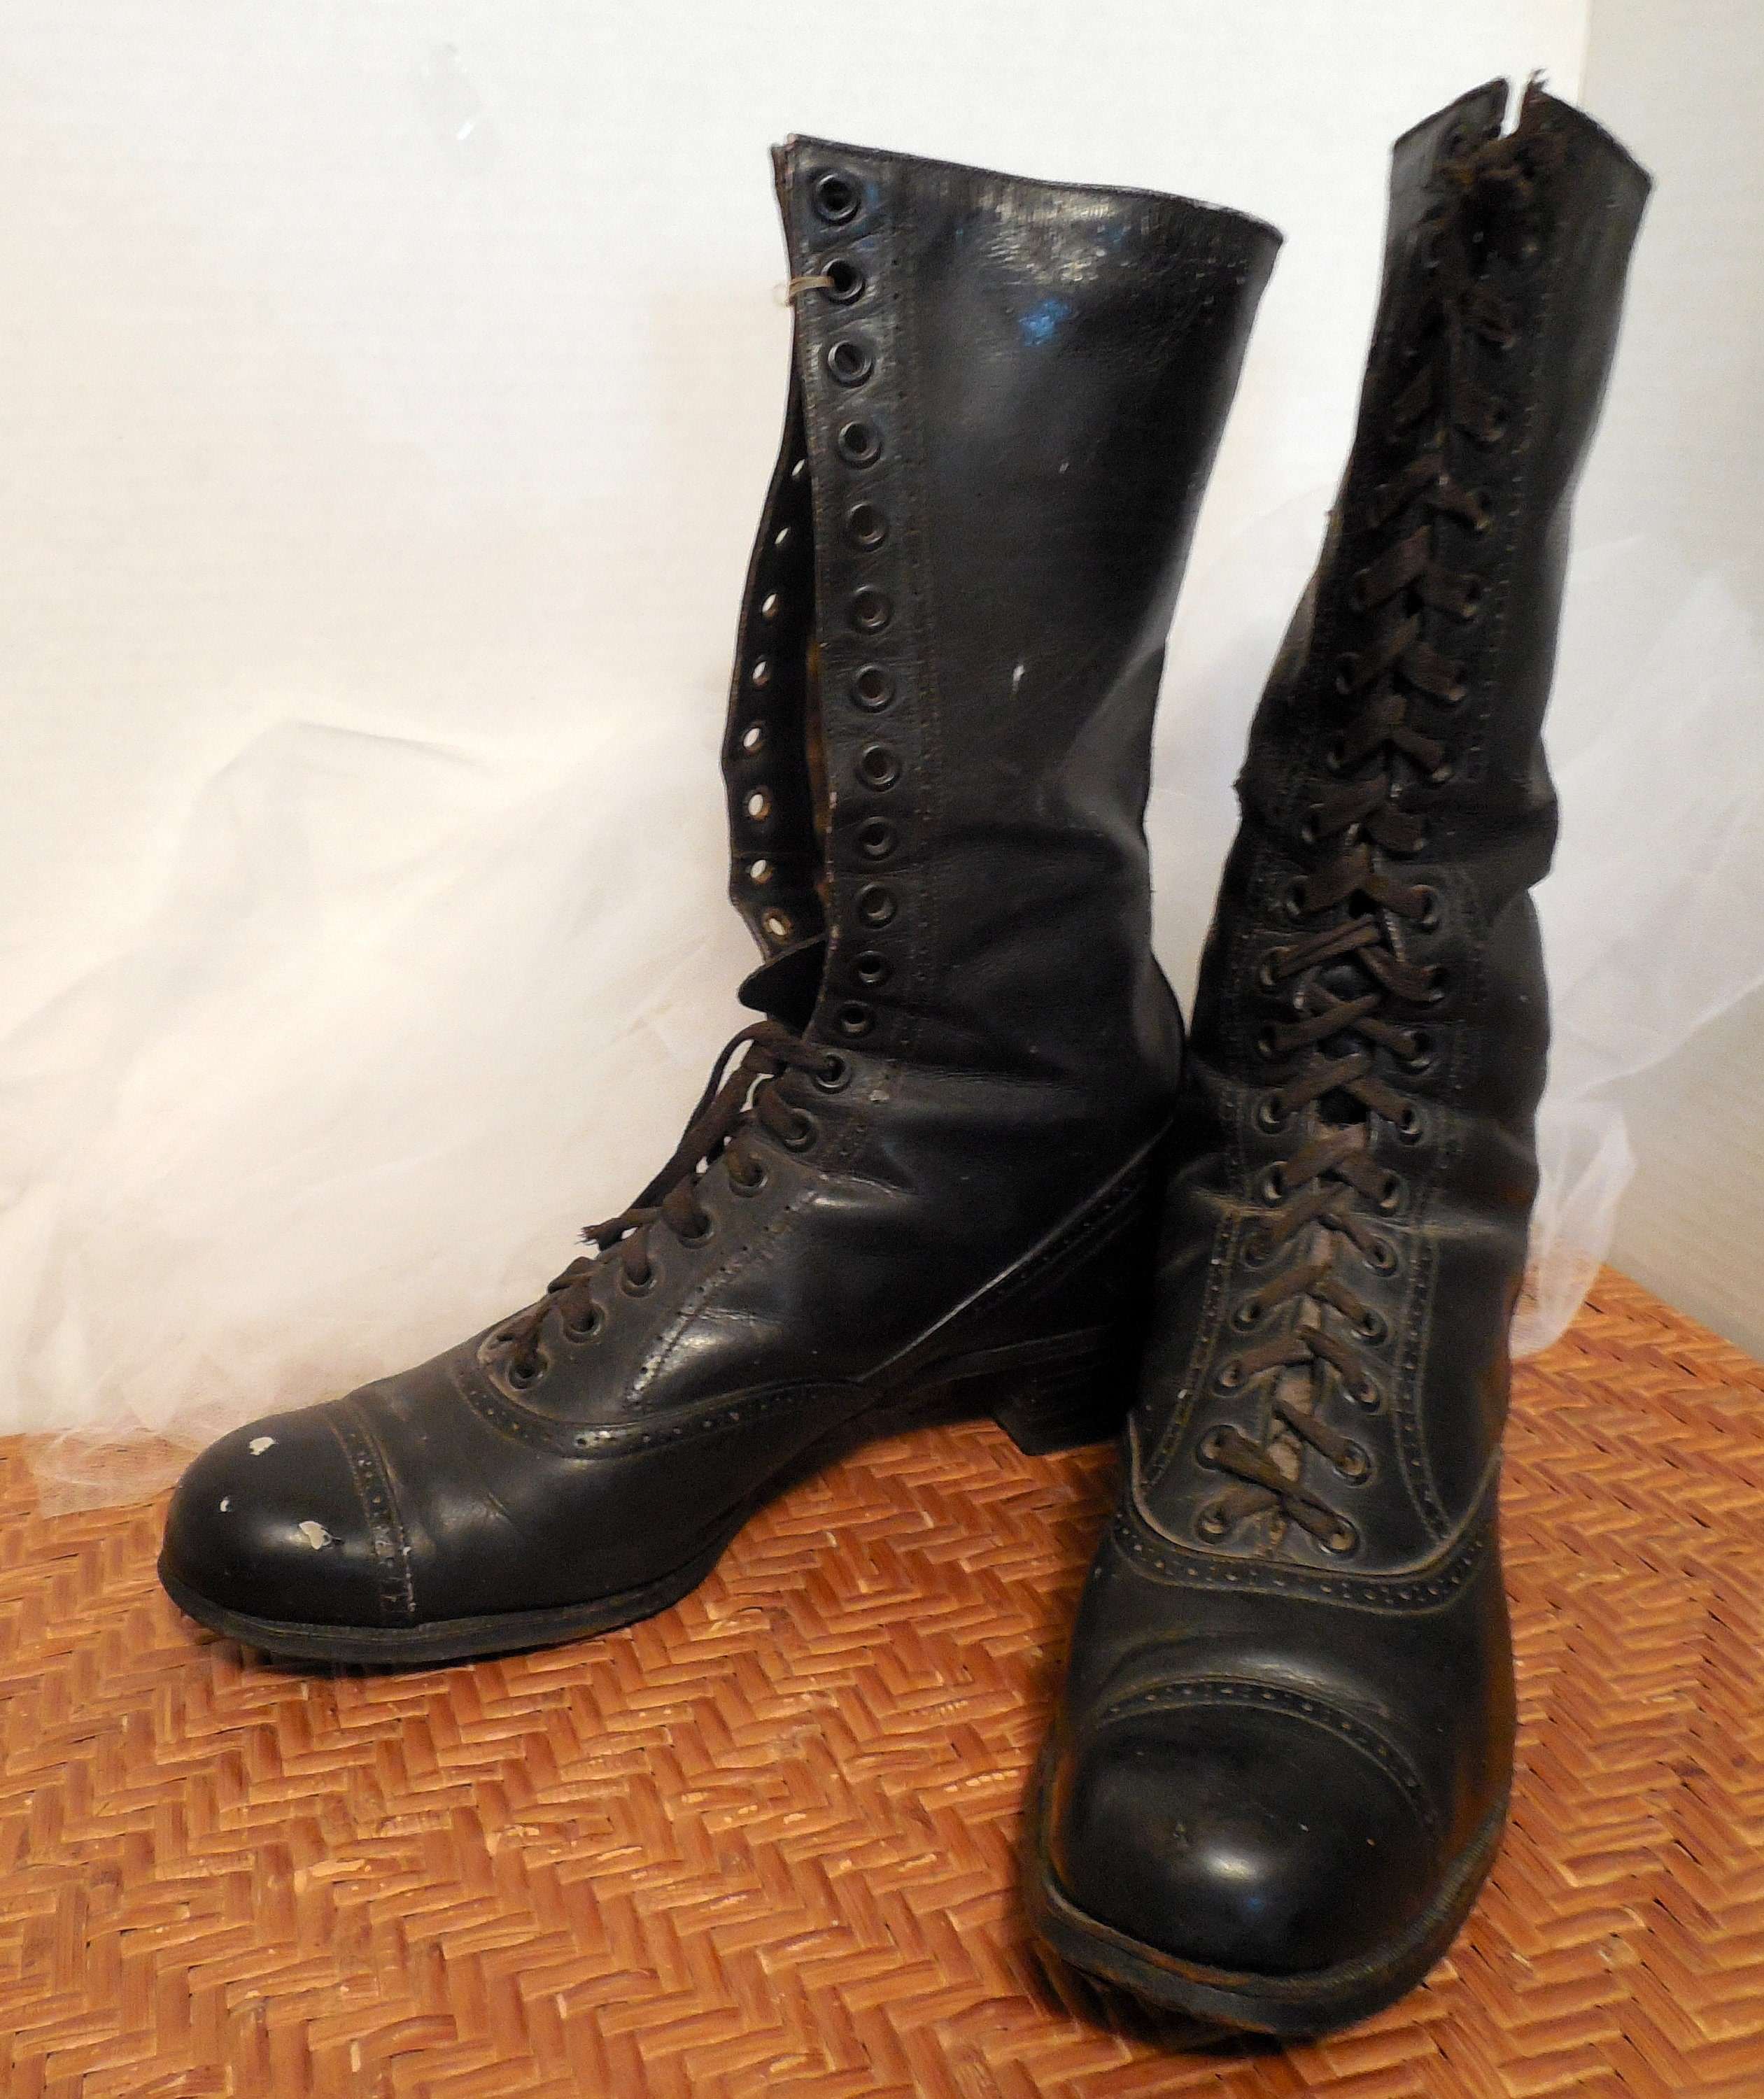 e4a011e4a4a97 Antique Ladies Lace-Up Boots, Vintage Ladies Boots by Diana, AS IS  Condition, Display Boots, Witch Boots, Haunted House Decor, Show & Tell